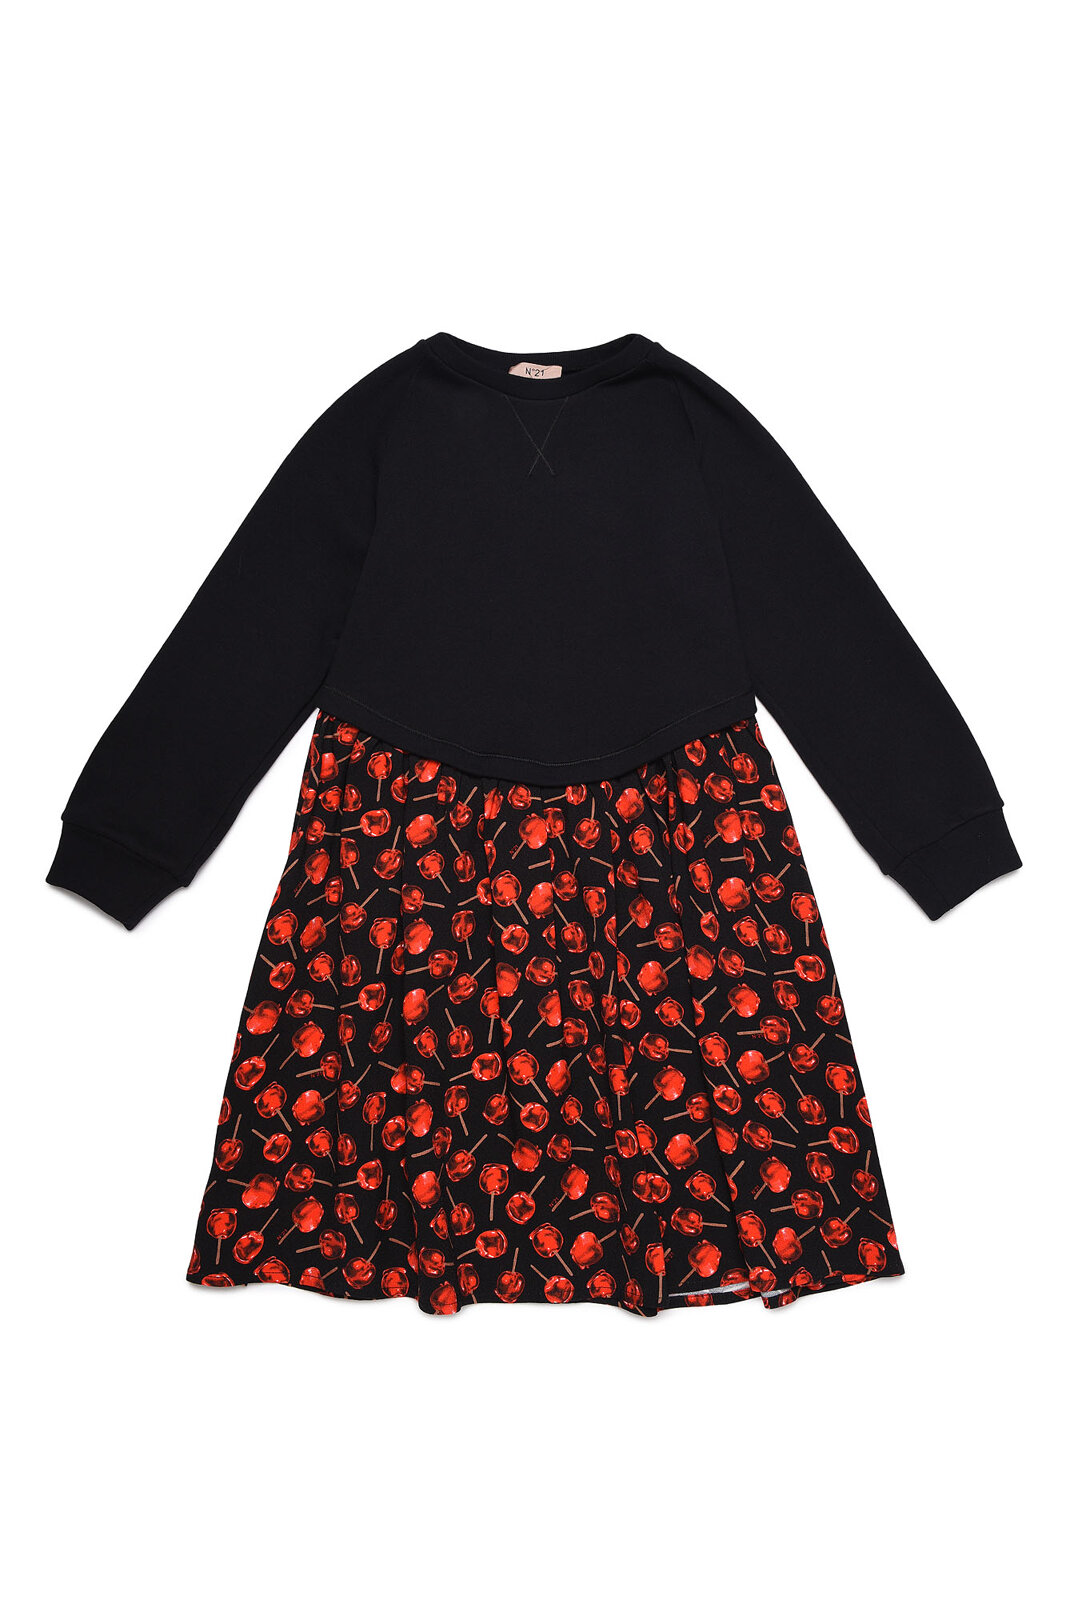 Dress - N21 Junior